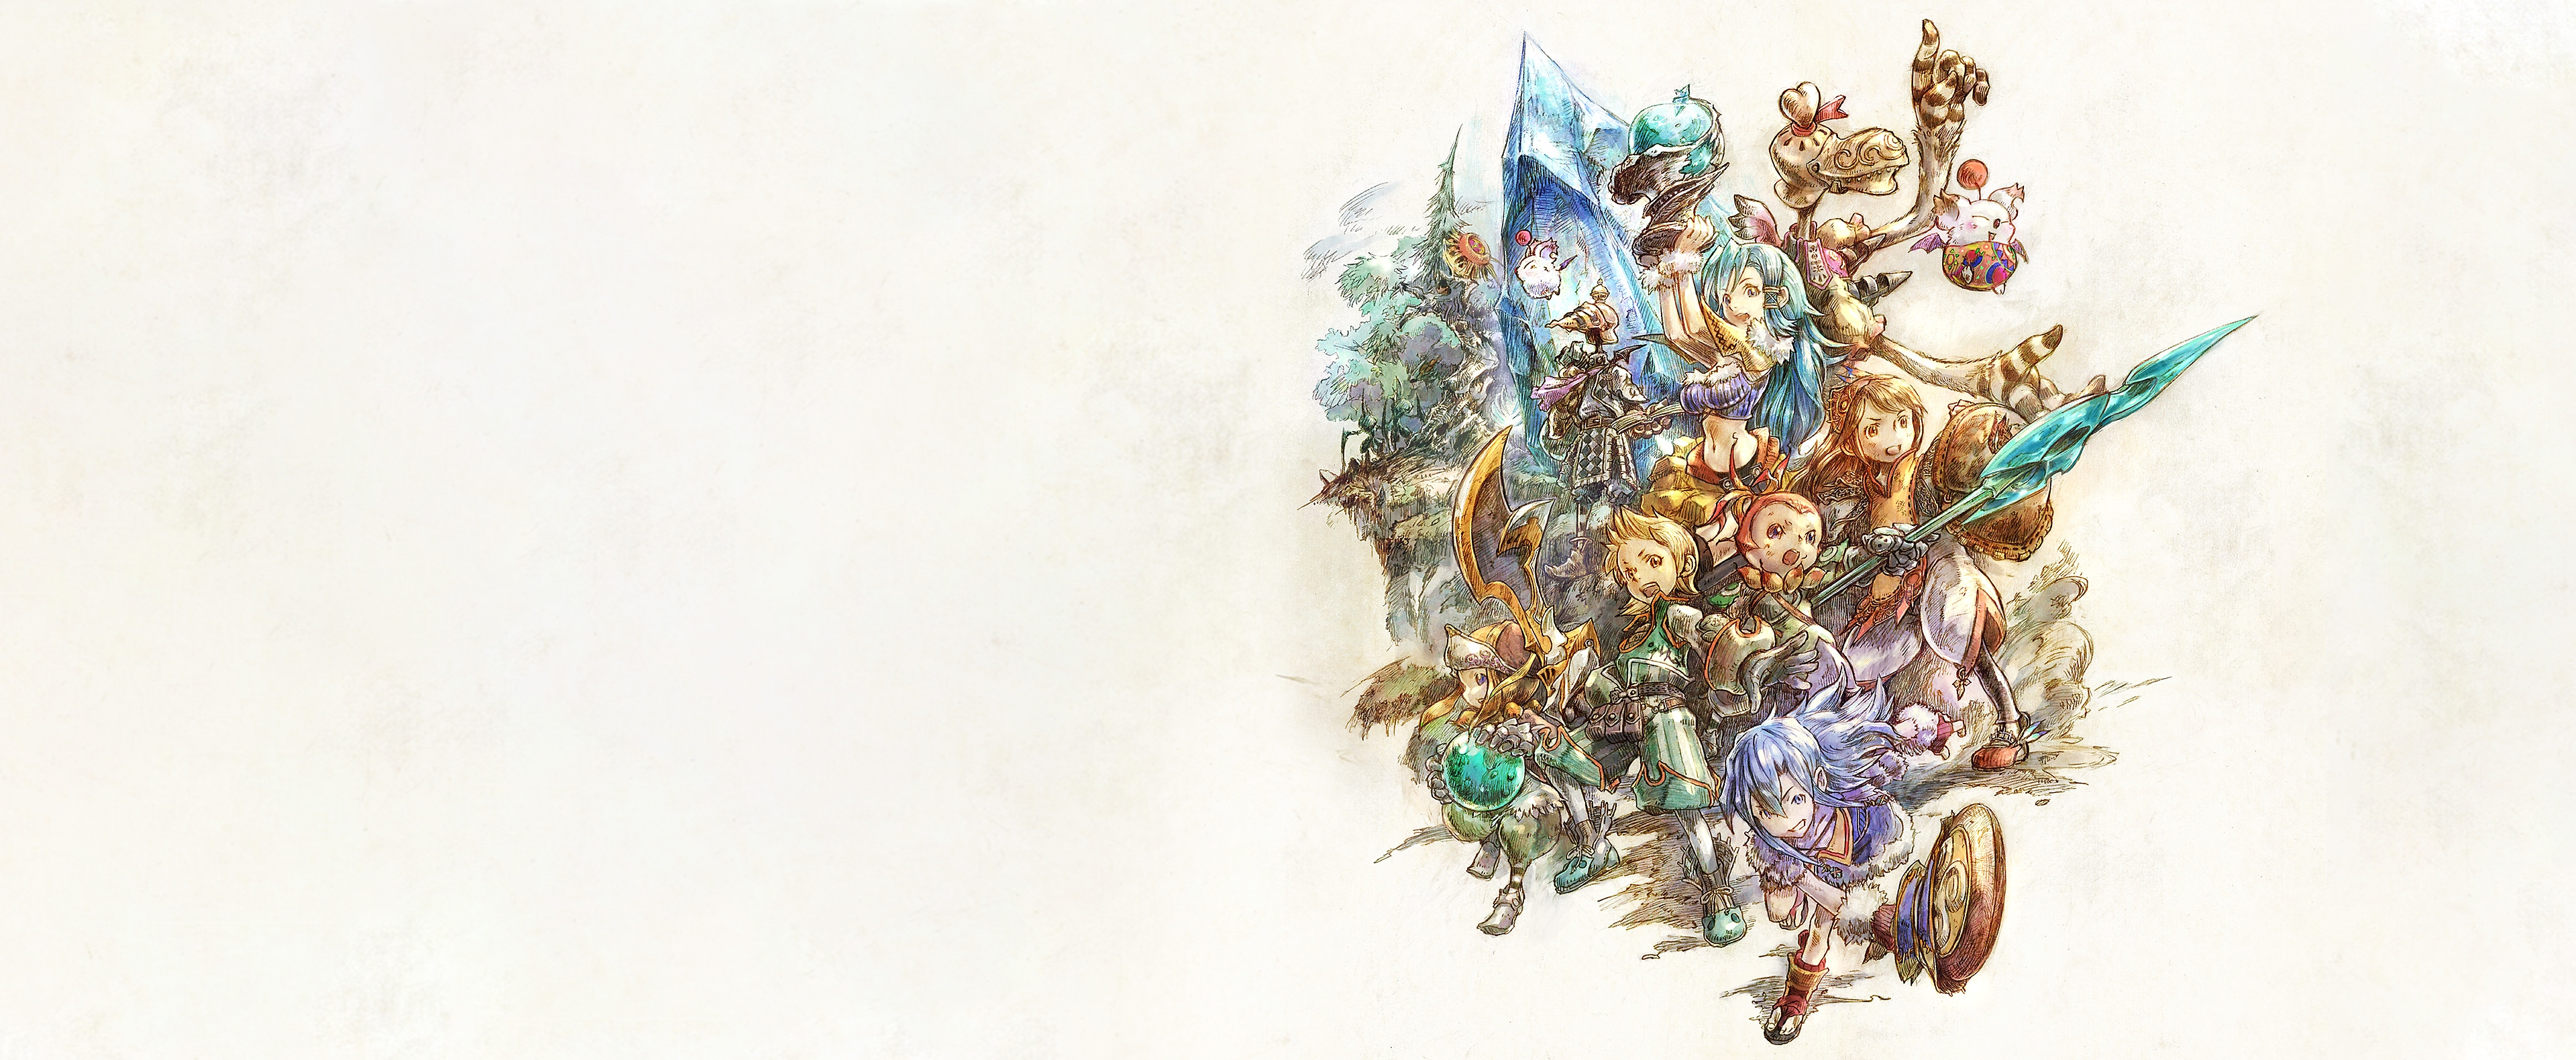 Final Fantasy Crystal Chronicles Remastered Edition glavni umjetnički elementi.